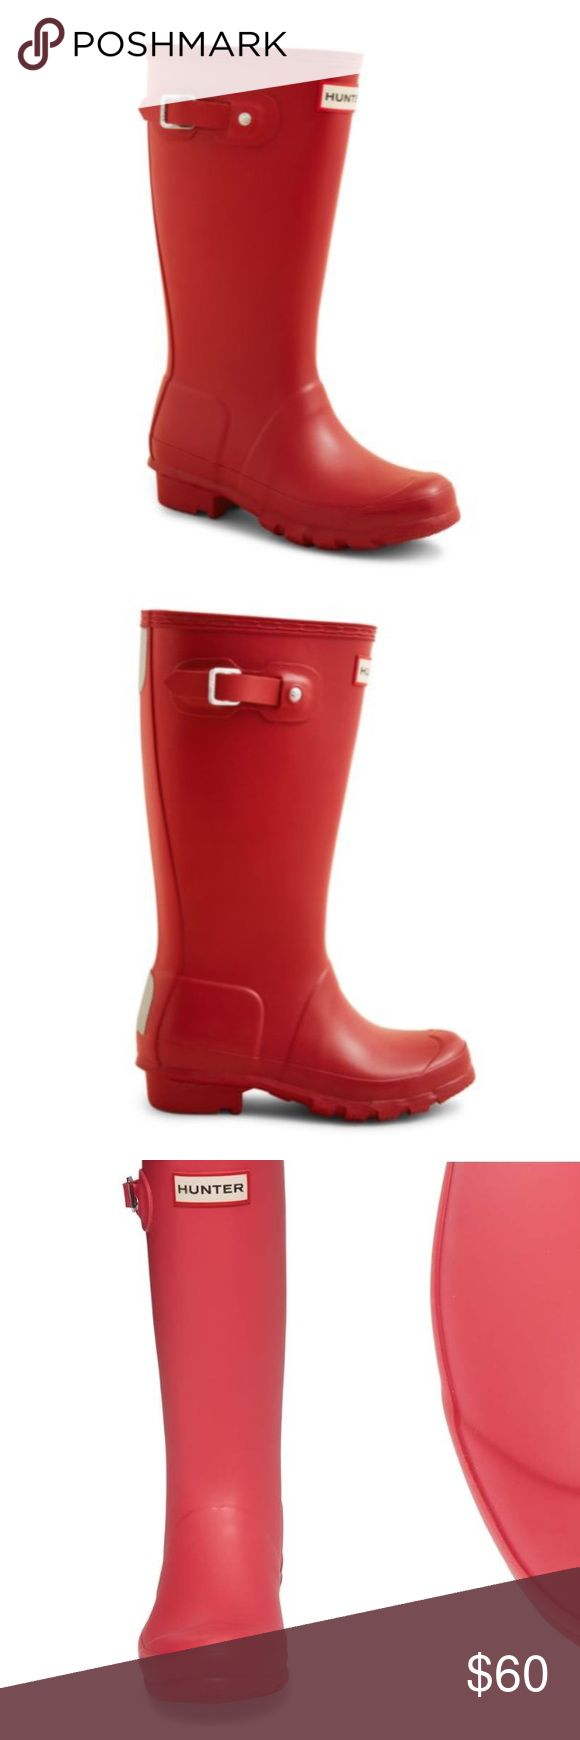 """Hunter Knee High Military Red Boots Size 4K 5W Hunter knee-high classic design fit for your little or big puddle splasher.  Size 4 kids. However fits a 5 woman perfectly even with Hunter boot socks!  Please see all pics for wear. Minor surface scratches to insides. Not noticeable when worn.   Fits true to size, designed to accommodate a sock Pull on, adjustable buckle at outside Reflective safety patches at back Comfort cushioned footbed 12.75"""" shaft height; 15"""" circumference  Man made…"""